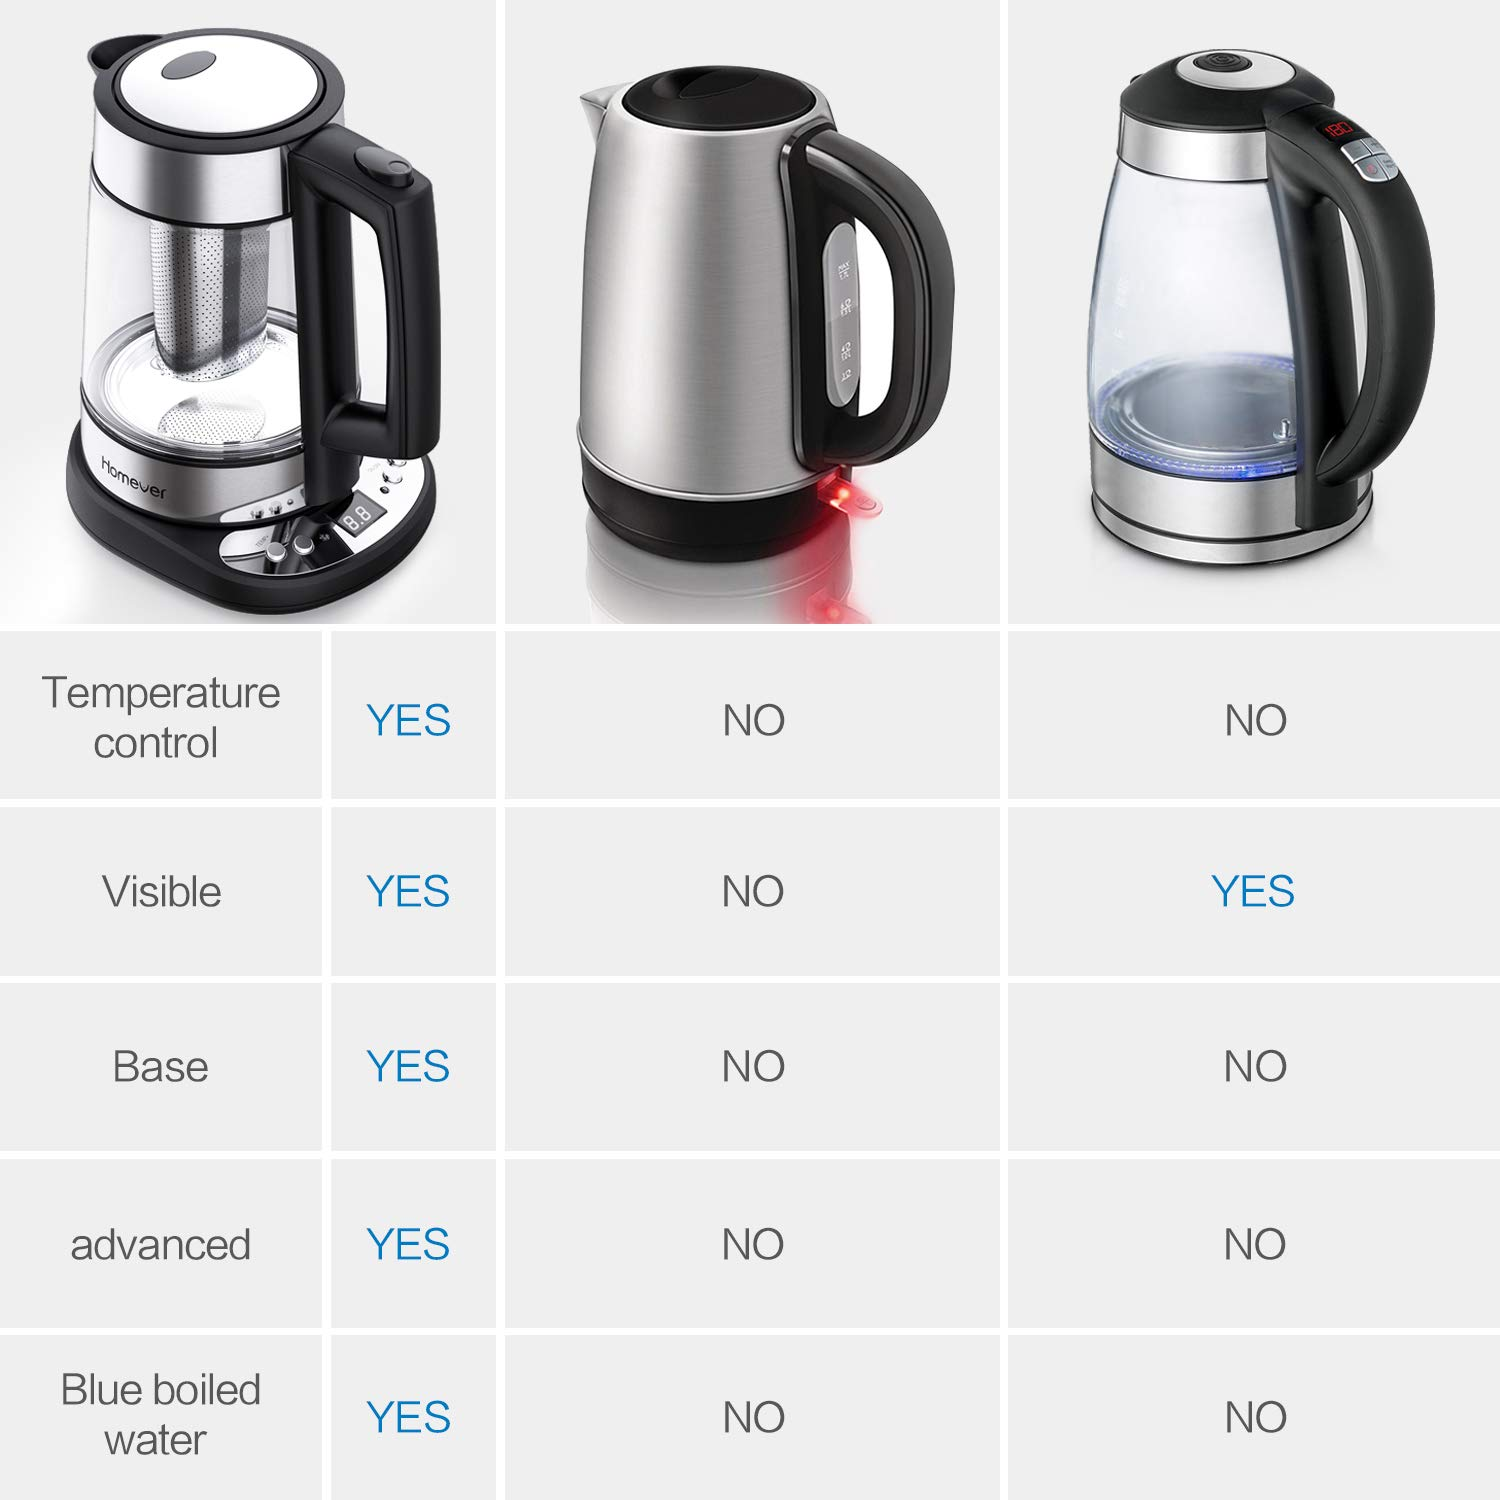 Homever Kettle, Electric Water Kettle, Tea Kettle, Thermostatic Kettle with Adjustable Temperature Electric Cordless Glass Kettle with Strainer 1.7L 1500W, Auto Shut-Off and Boil-Dry Protection by Homever (Image #6)